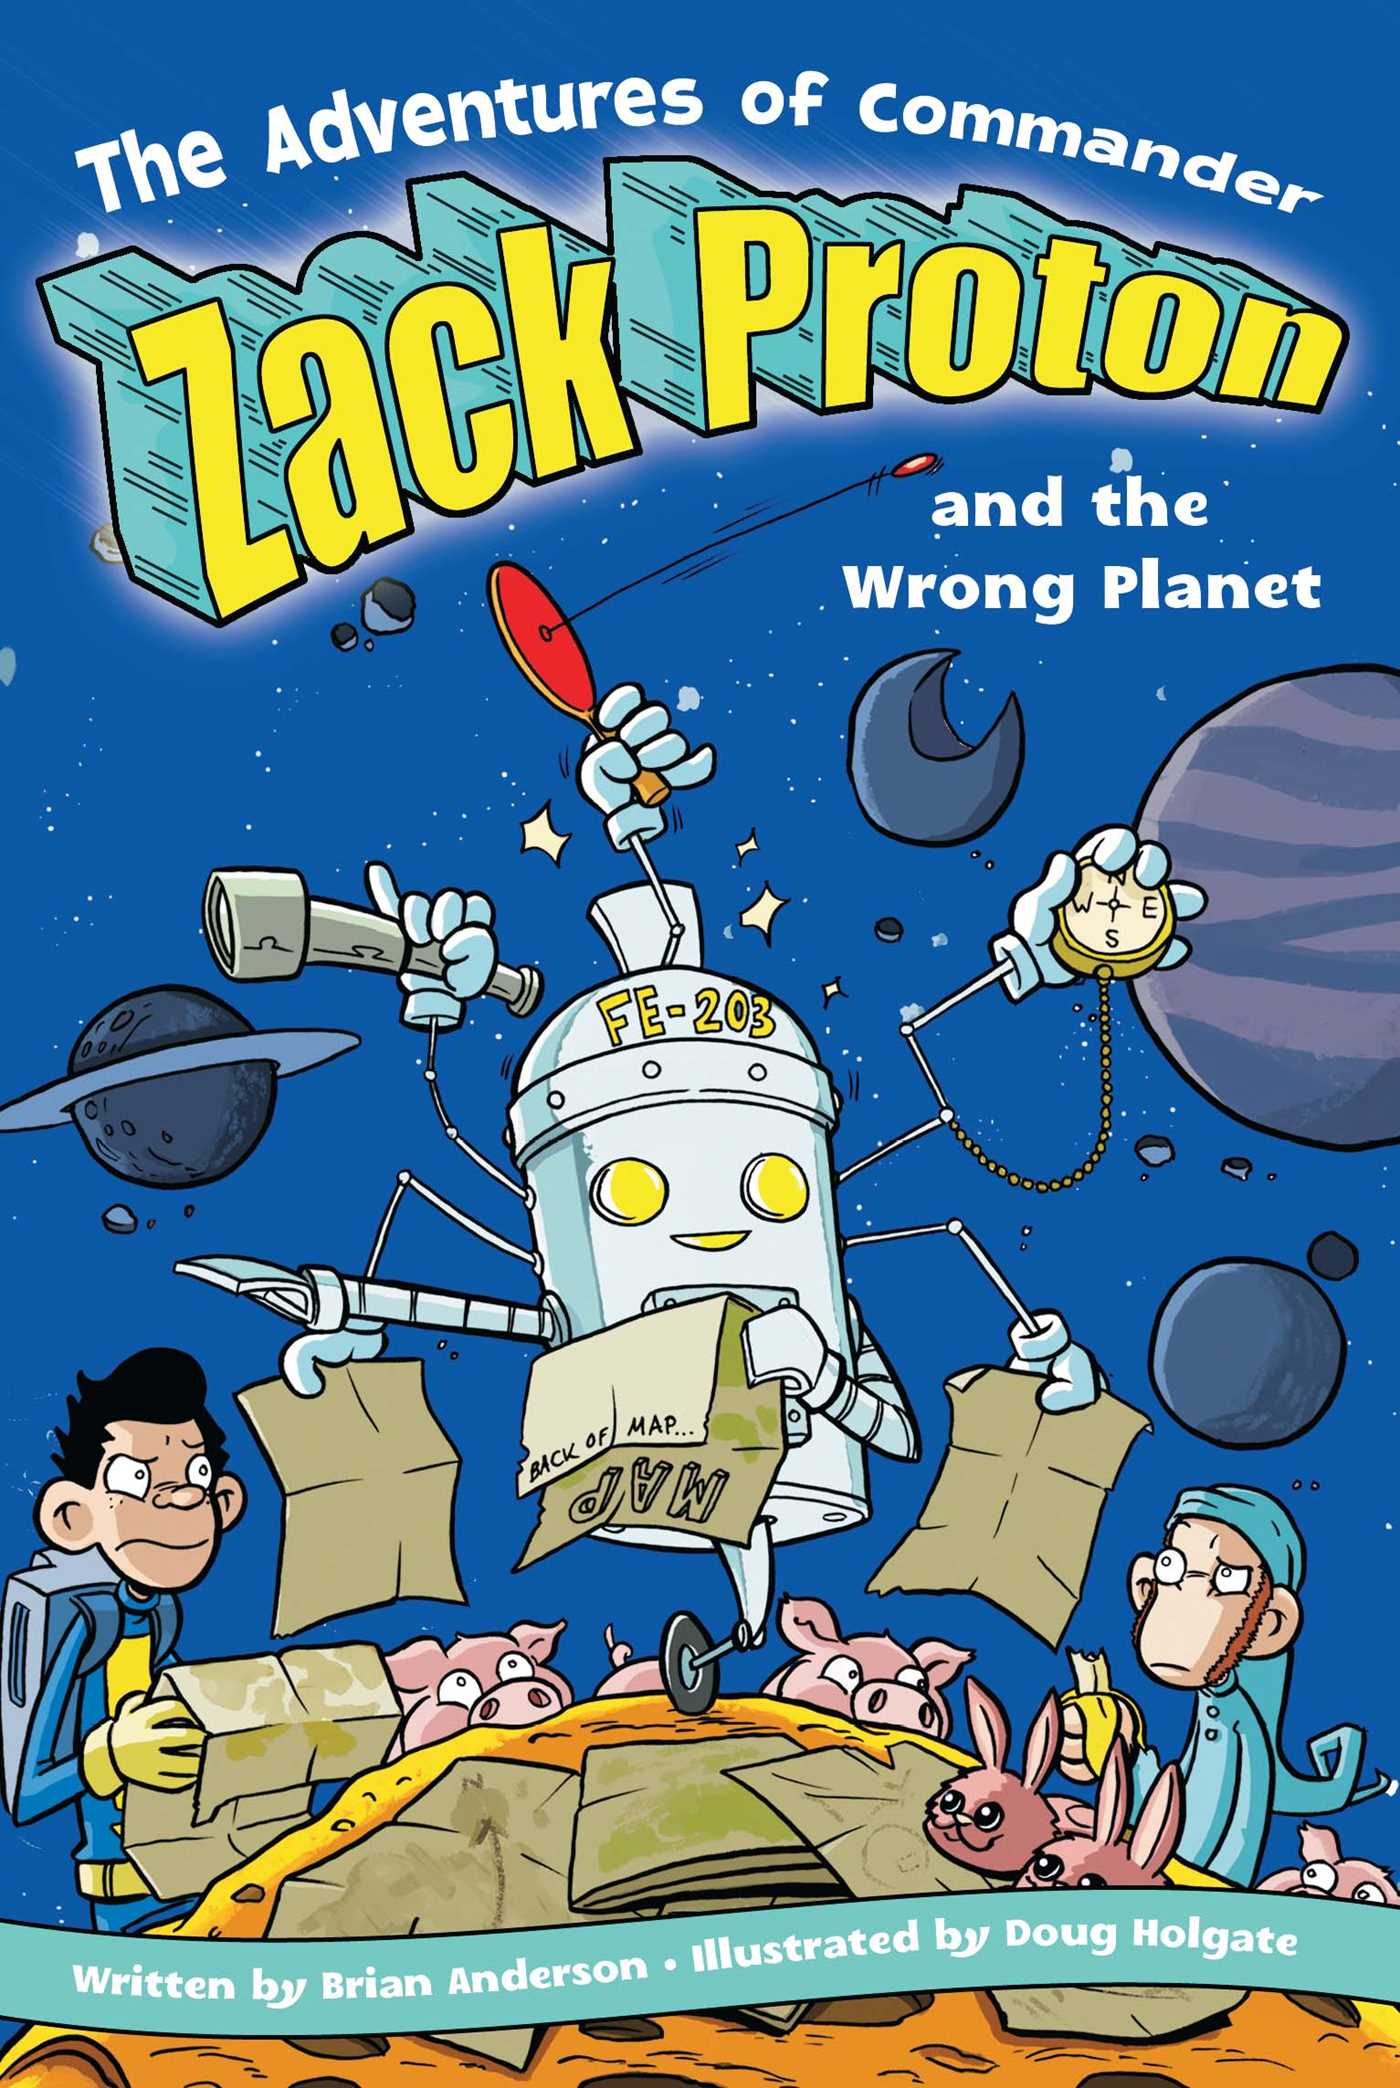 The adventures of commander zack proton and the wrong planet 9781416913665 hr